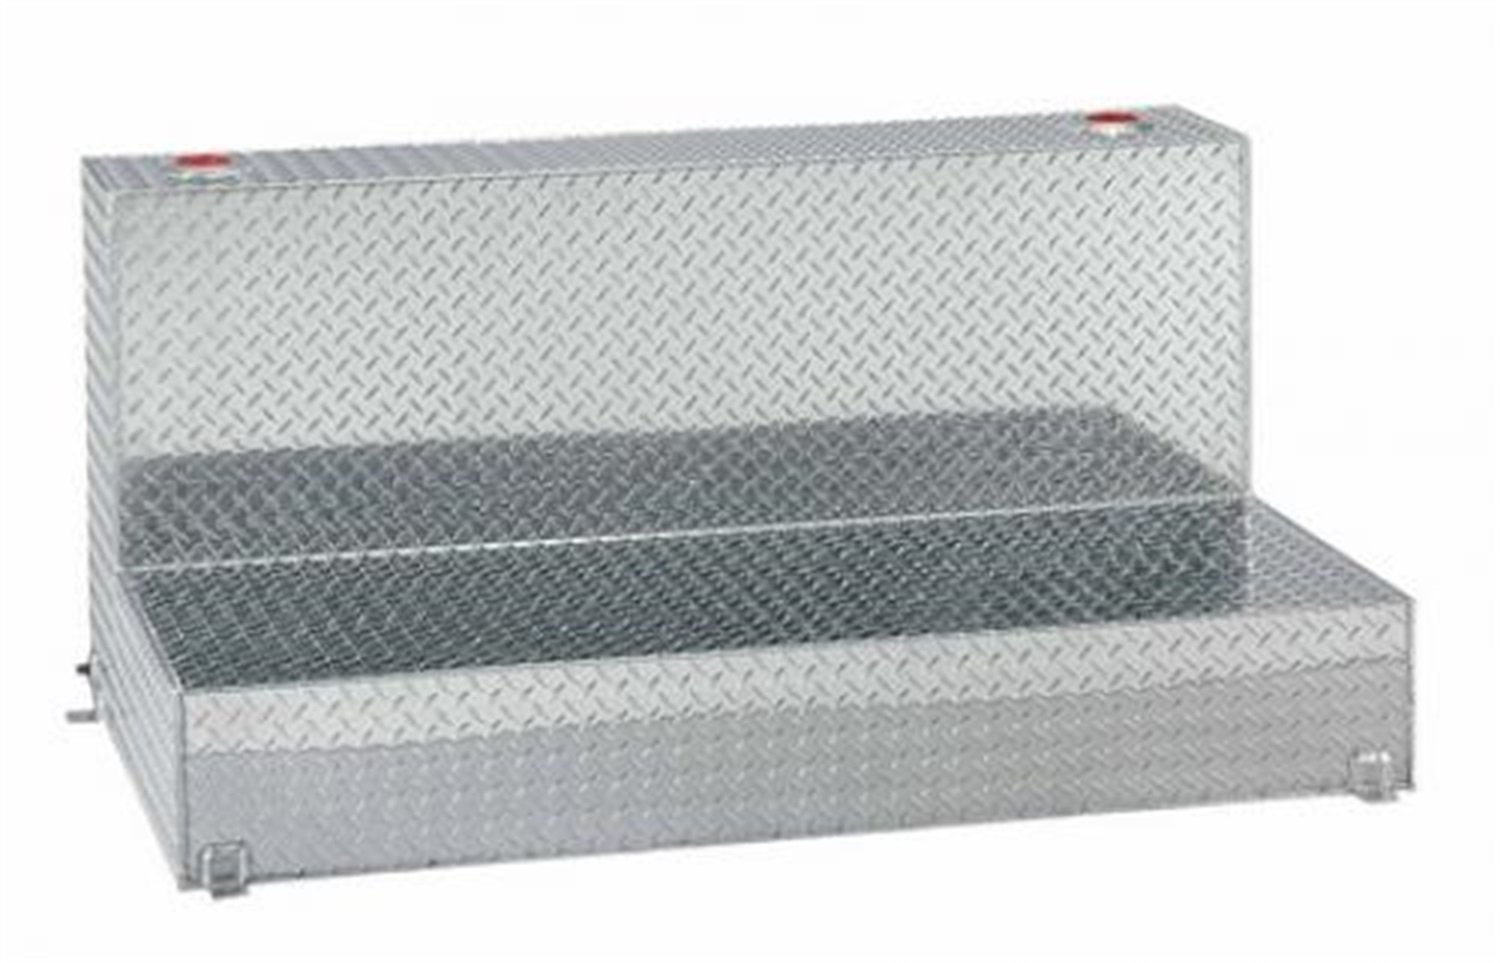 Lund 3248 48-Gallon L-Shaped Aluminum Liquid Storage Tank, Diamond Plated, Silver